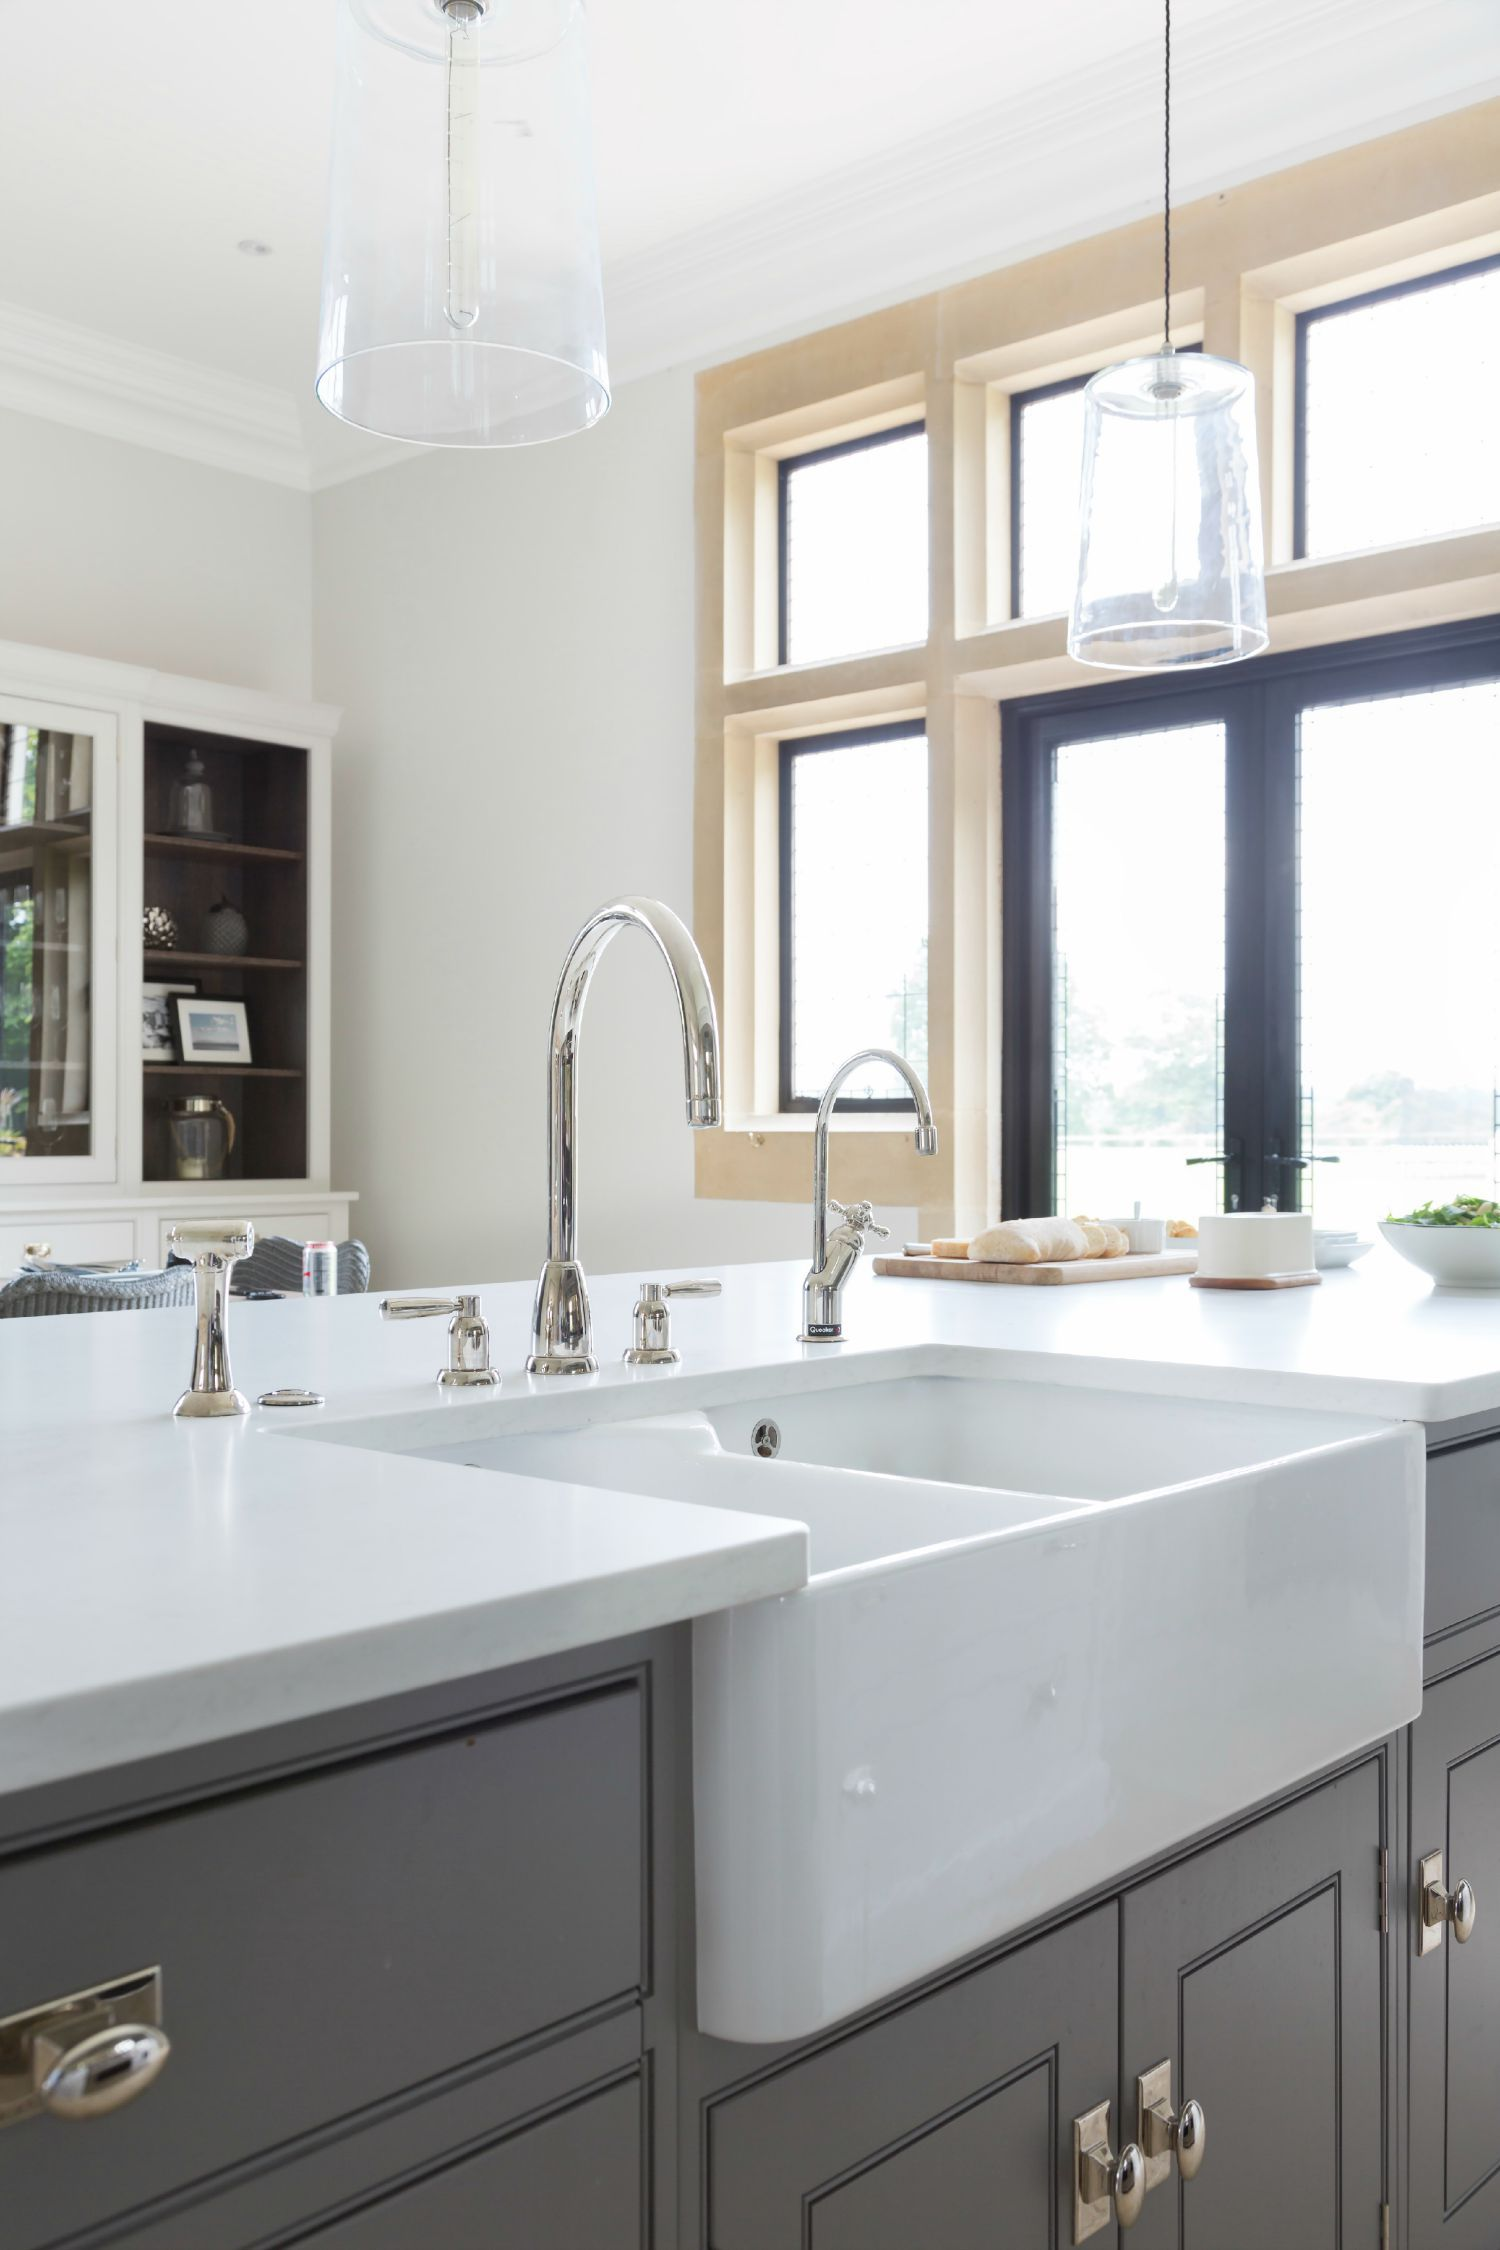 Villeroy and Boch double butler sink with perrin and rowe tap and ...